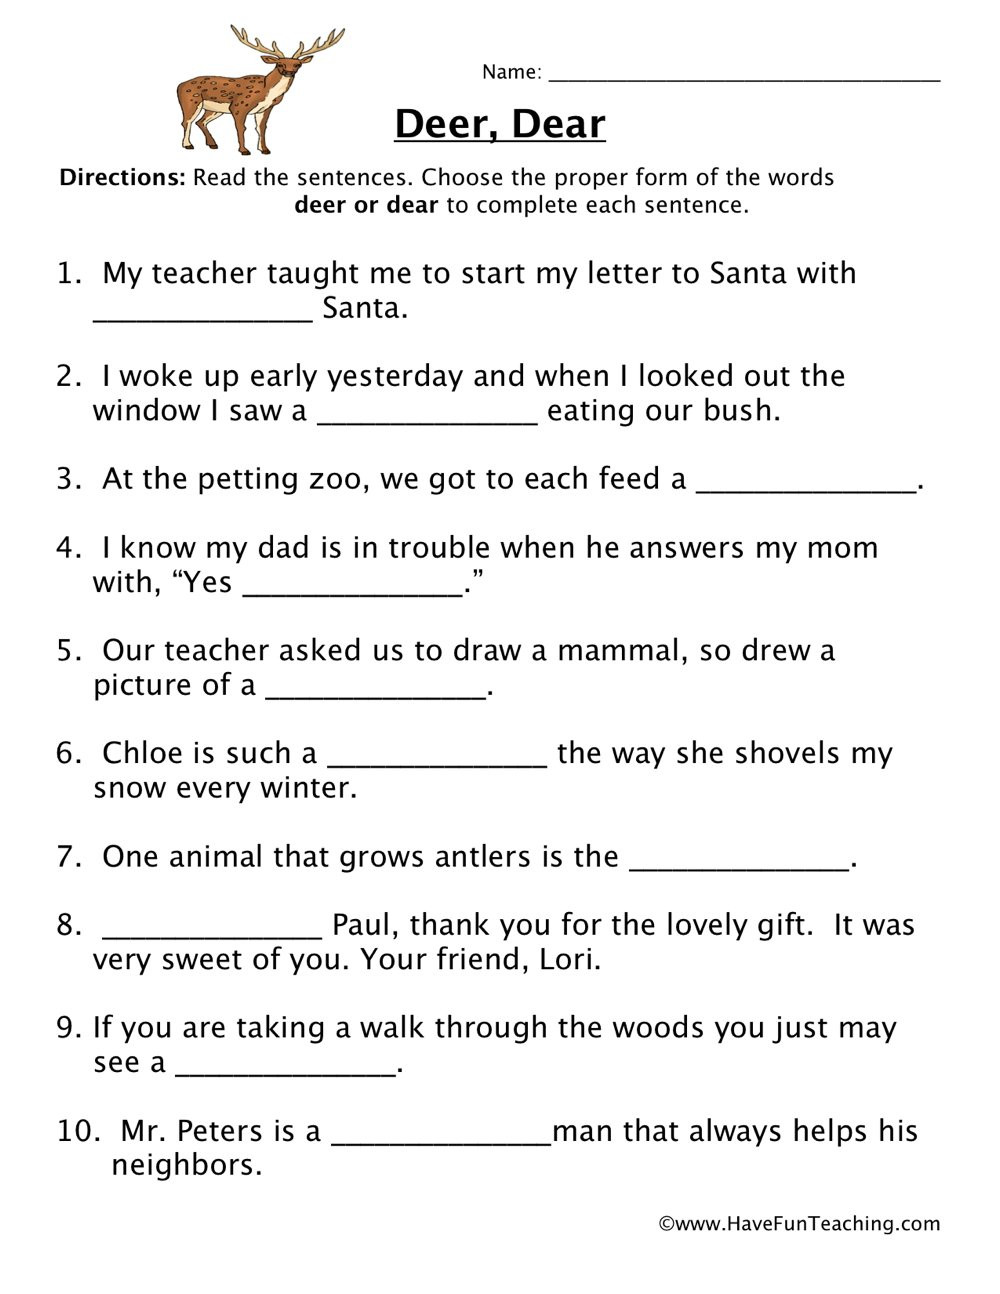 Homophone Worksheet 4th Grade Deer Dear Homophones Worksheet